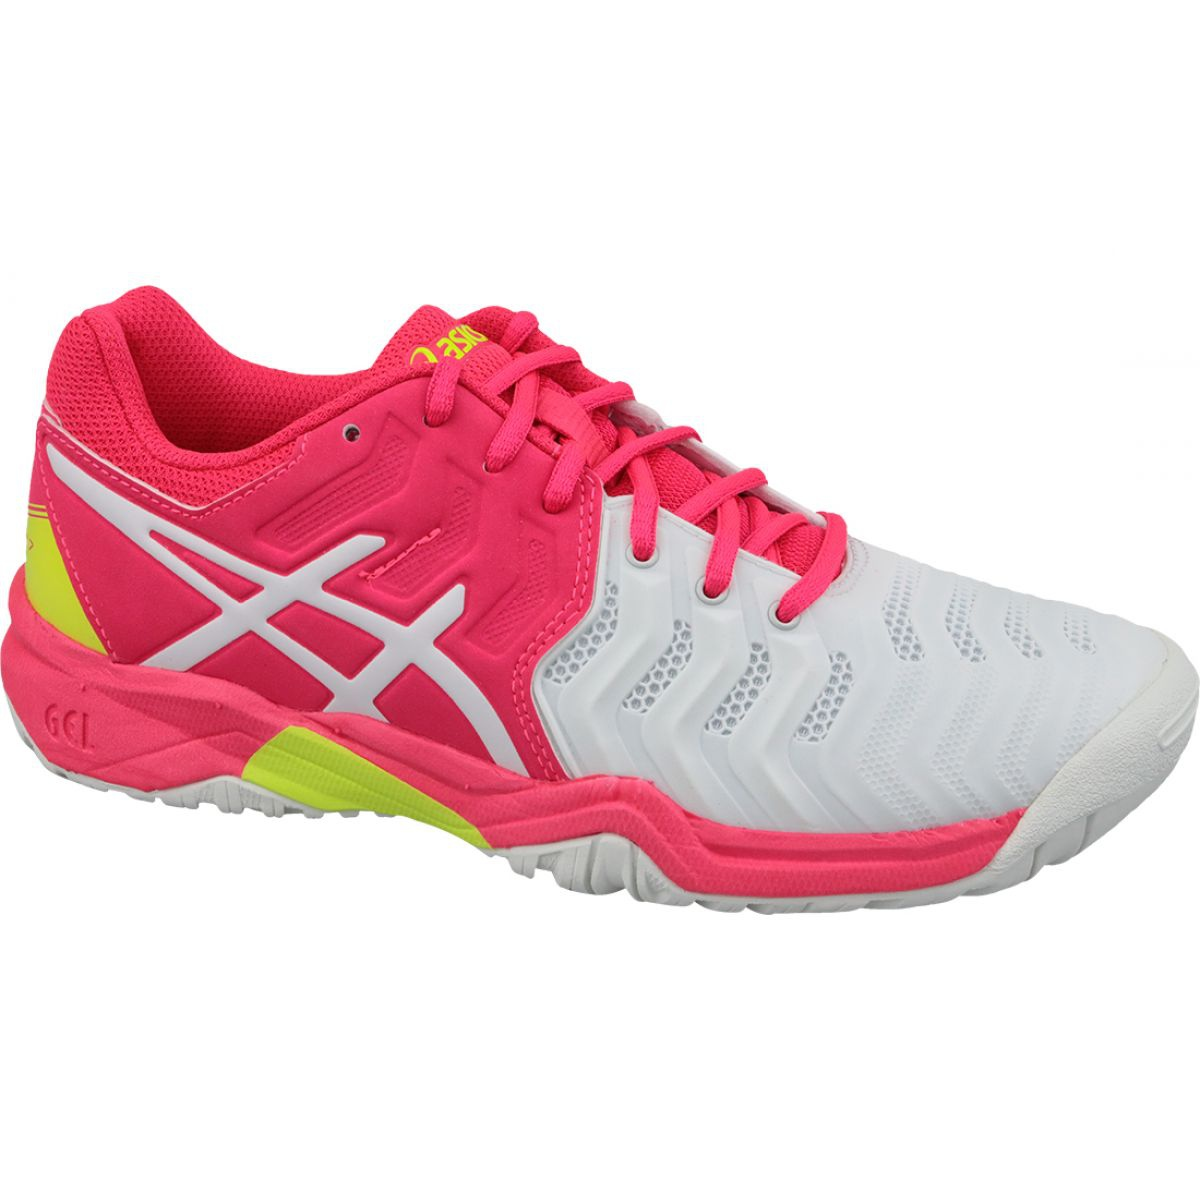 Rose Chaussures de tennis Asics Gel Resolution 7 Gs Jr C700Y 116